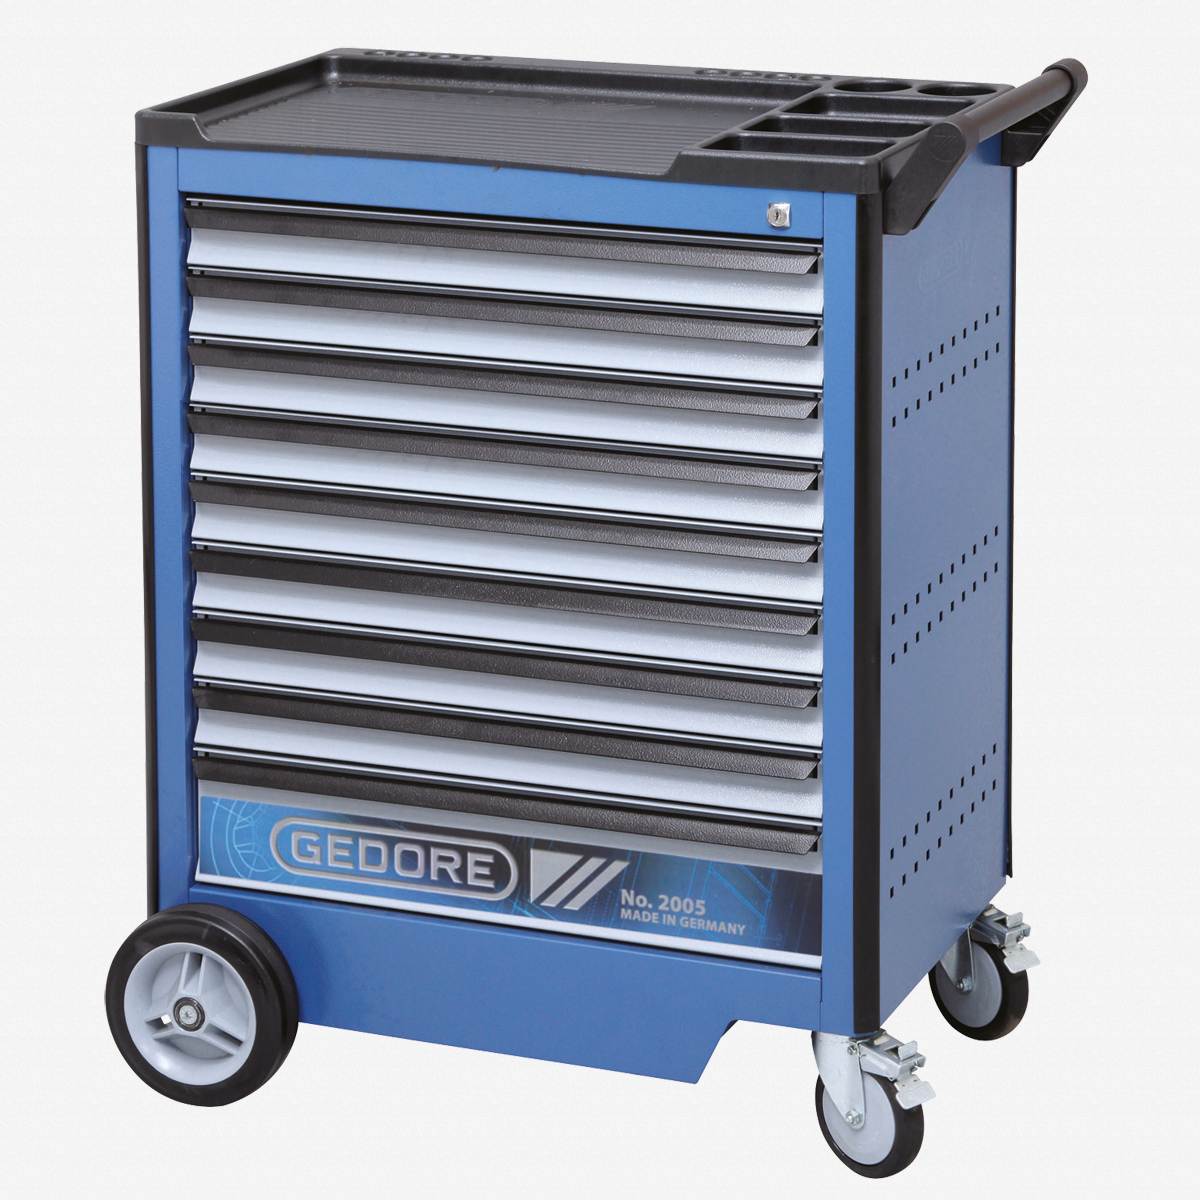 Gedore 2005 0810 Tool trolley with 9 drawers - KC Tool